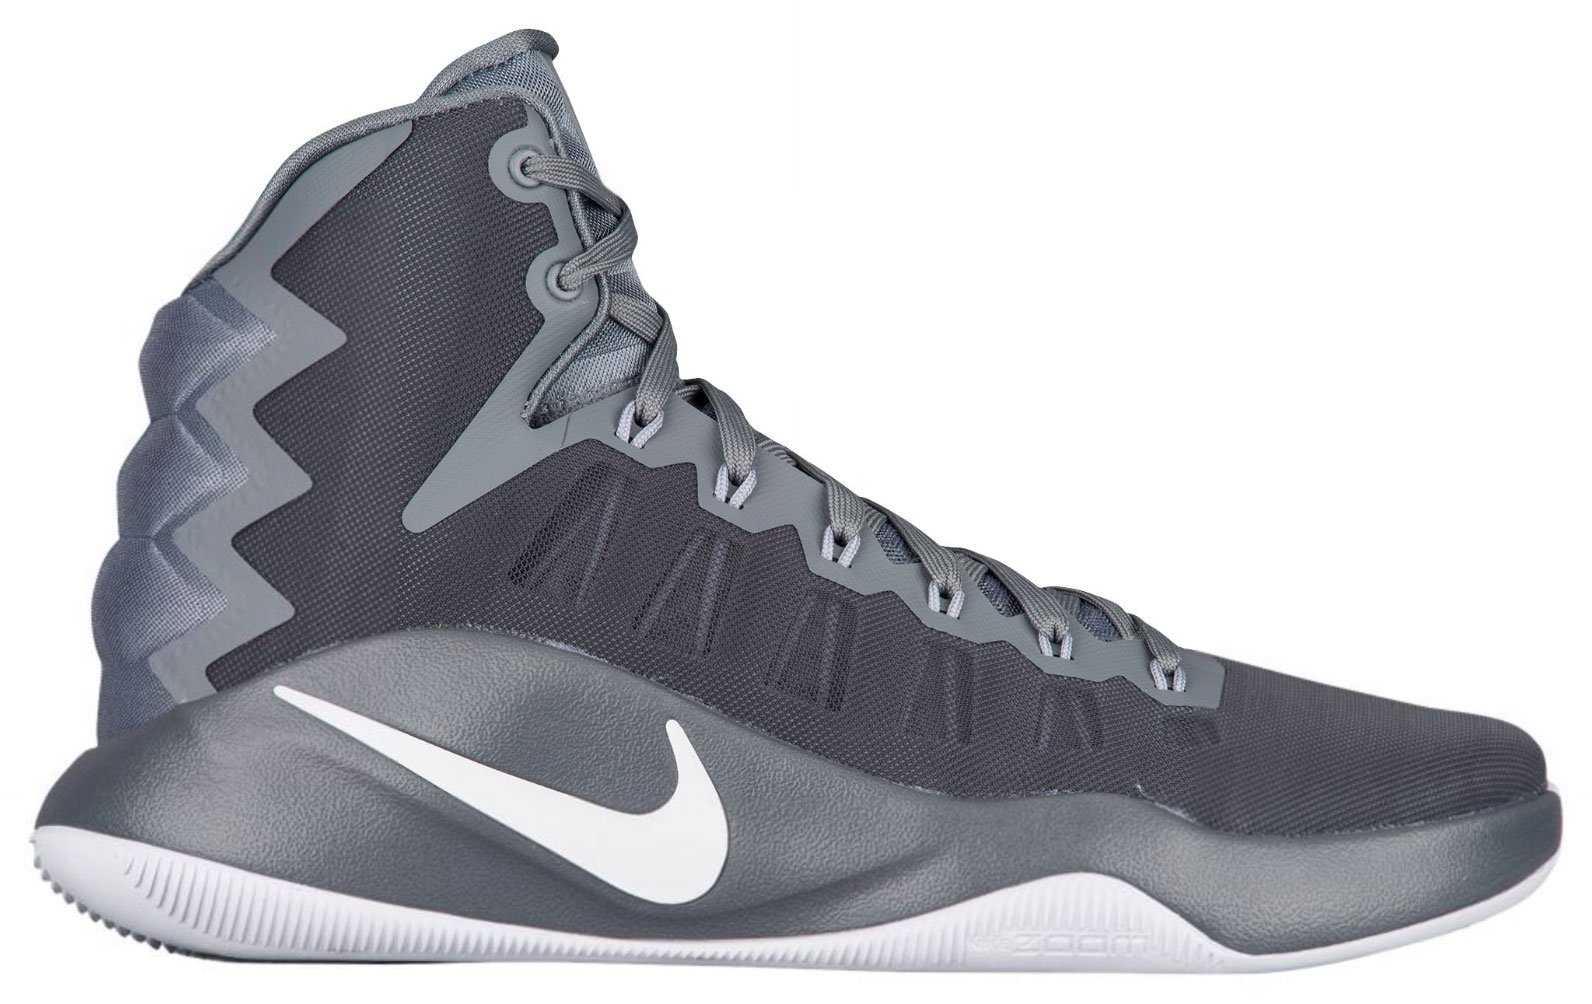 Nike Mens Hyperdunk 2016 Cool Grey/White/Wolf Grey Synthetic Basketball Shoes 13 M US